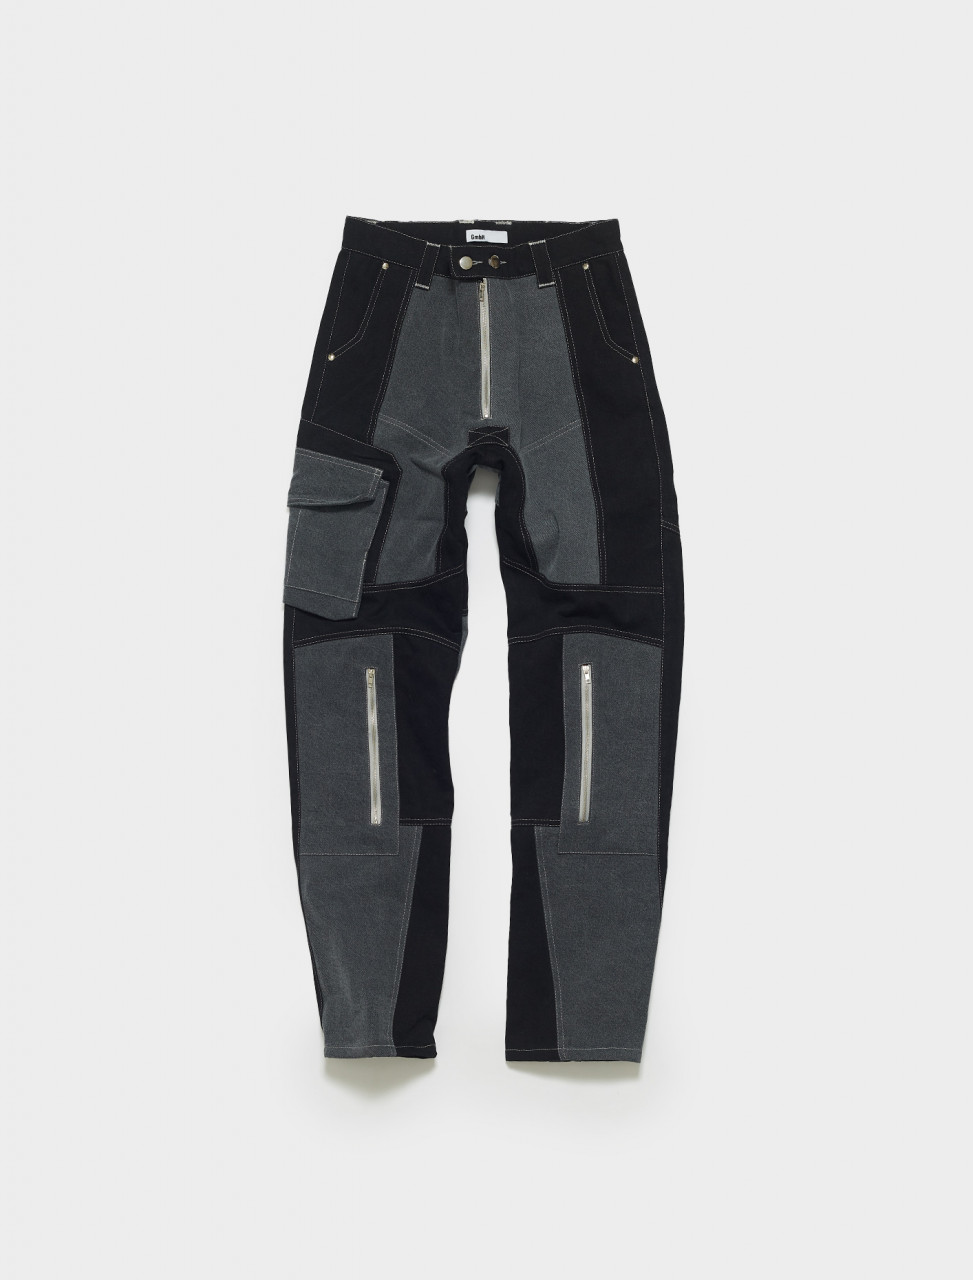 ANTON_M-Black & Grey GMBH ANTON BIKER JEANS BLACK GREY